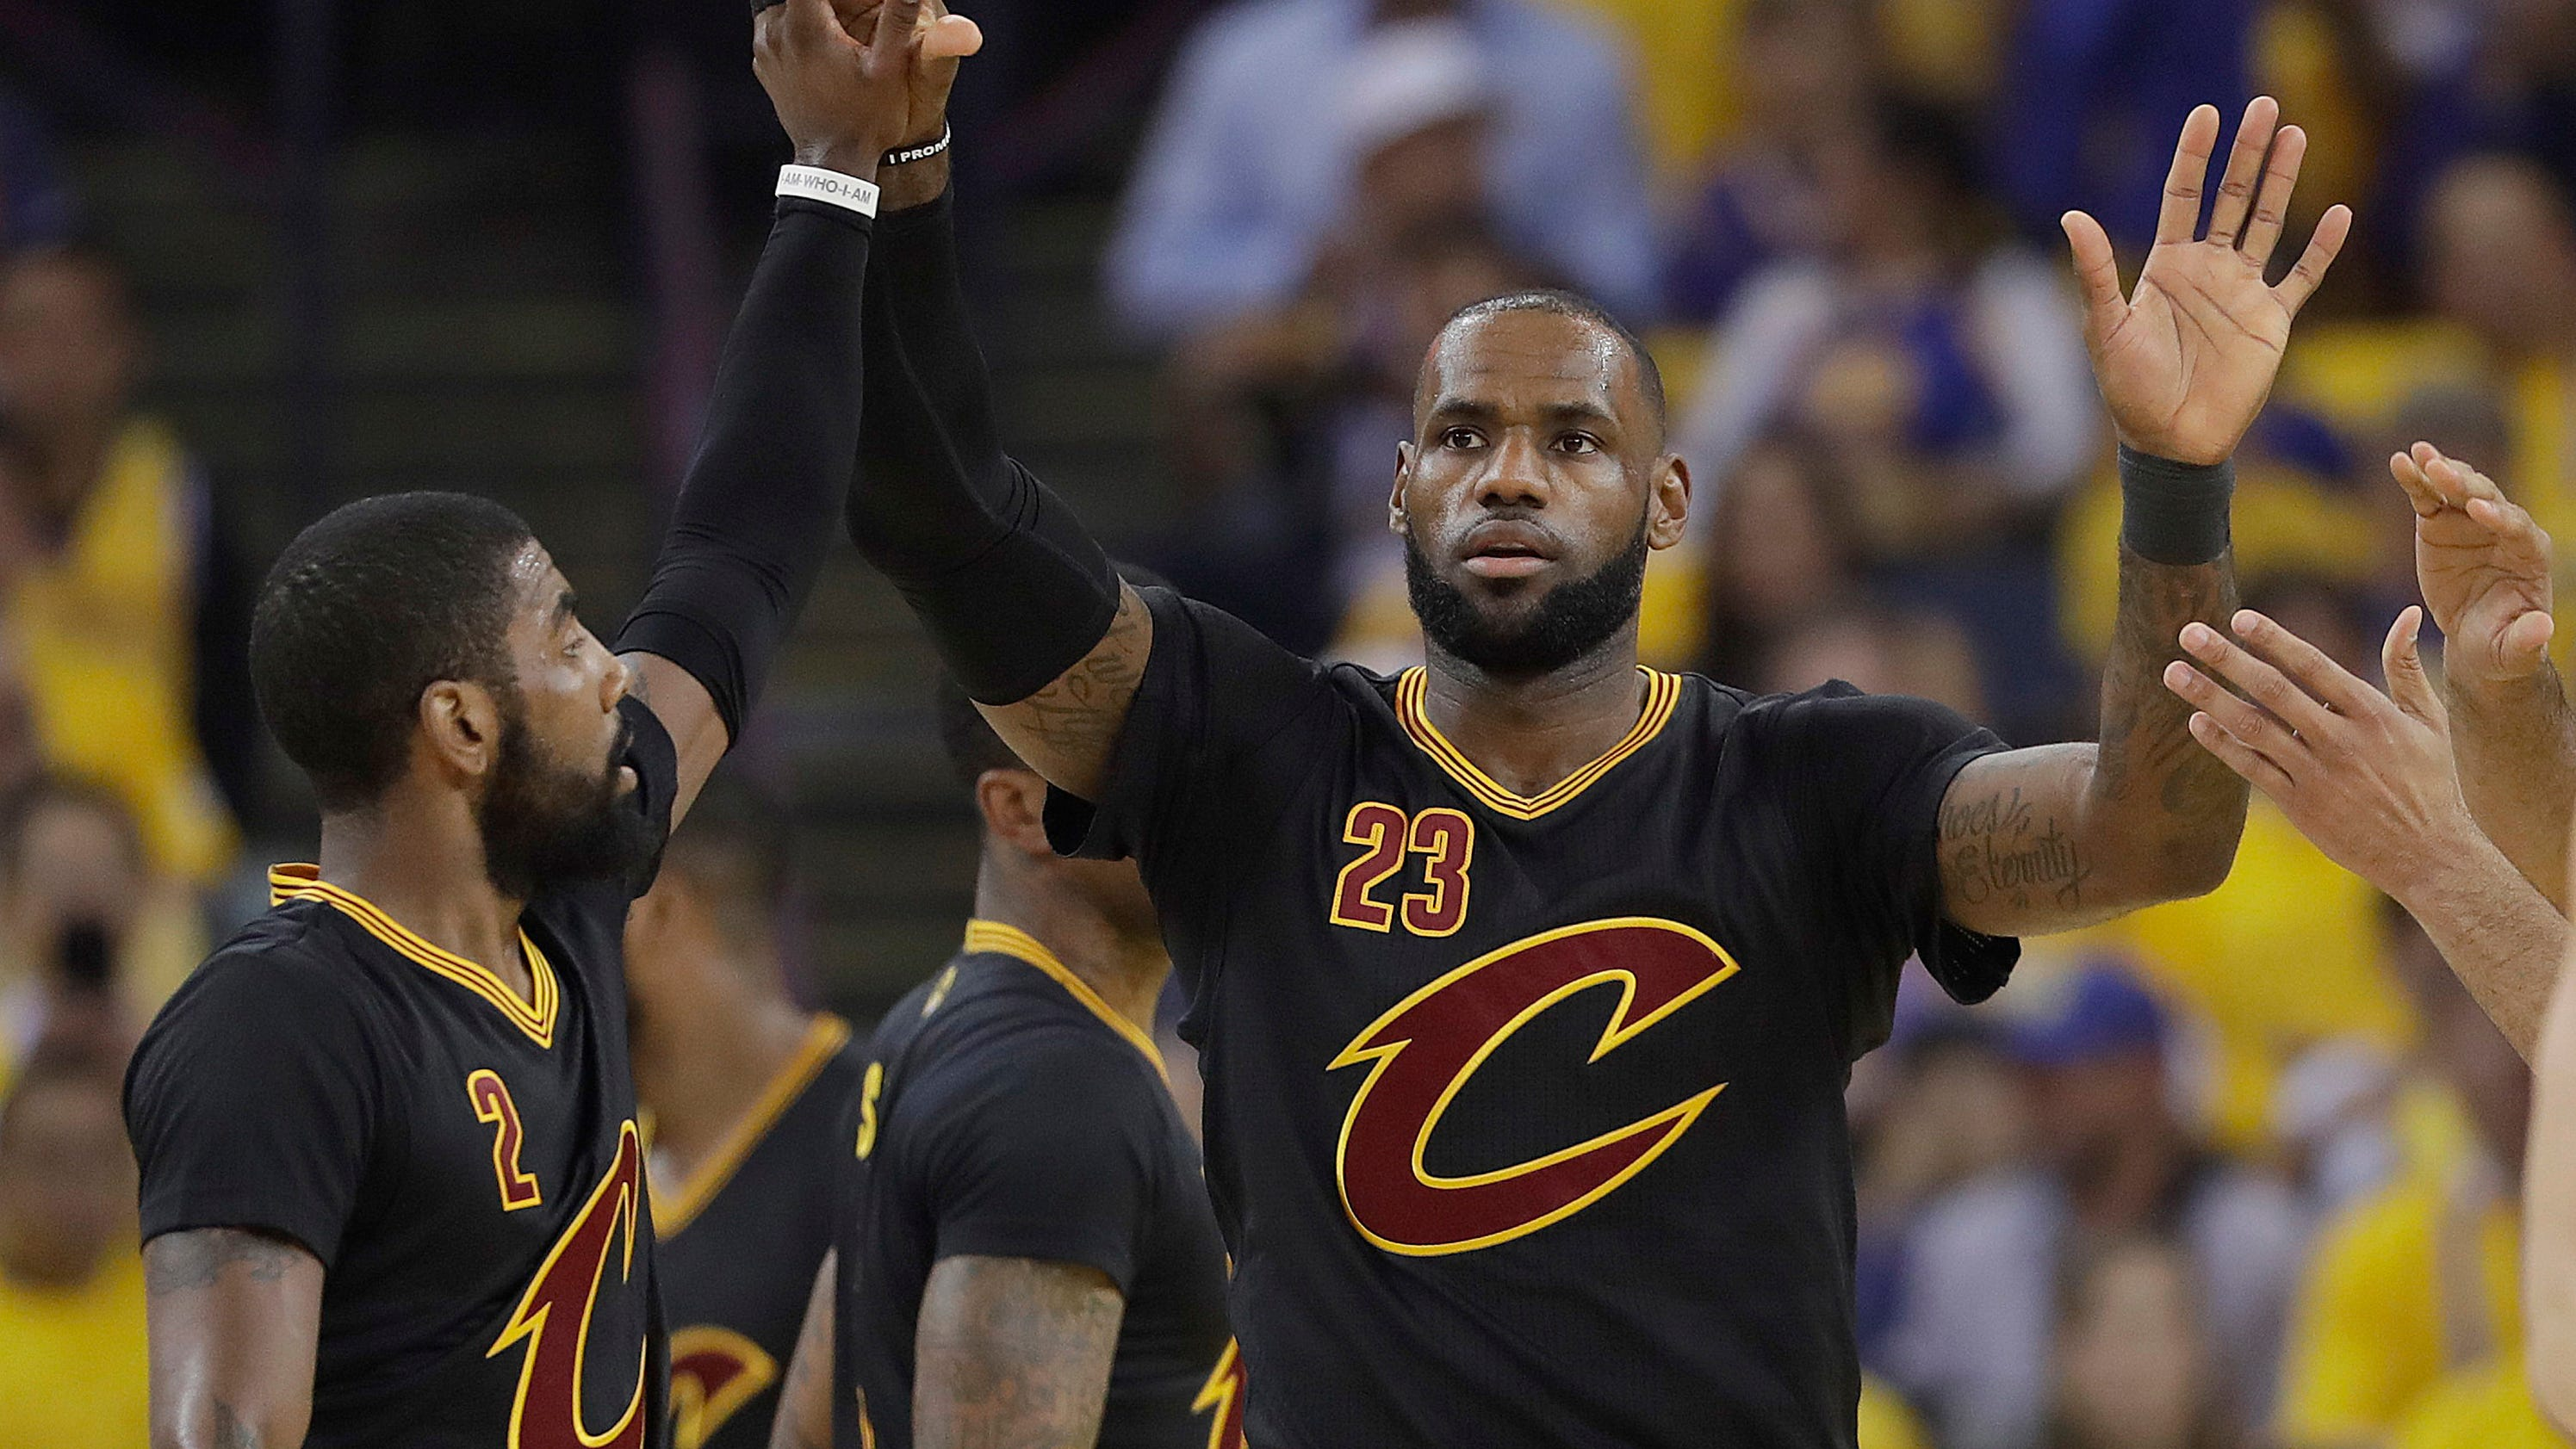 The Latest: Cavs jump out to early lead, fouls a factor